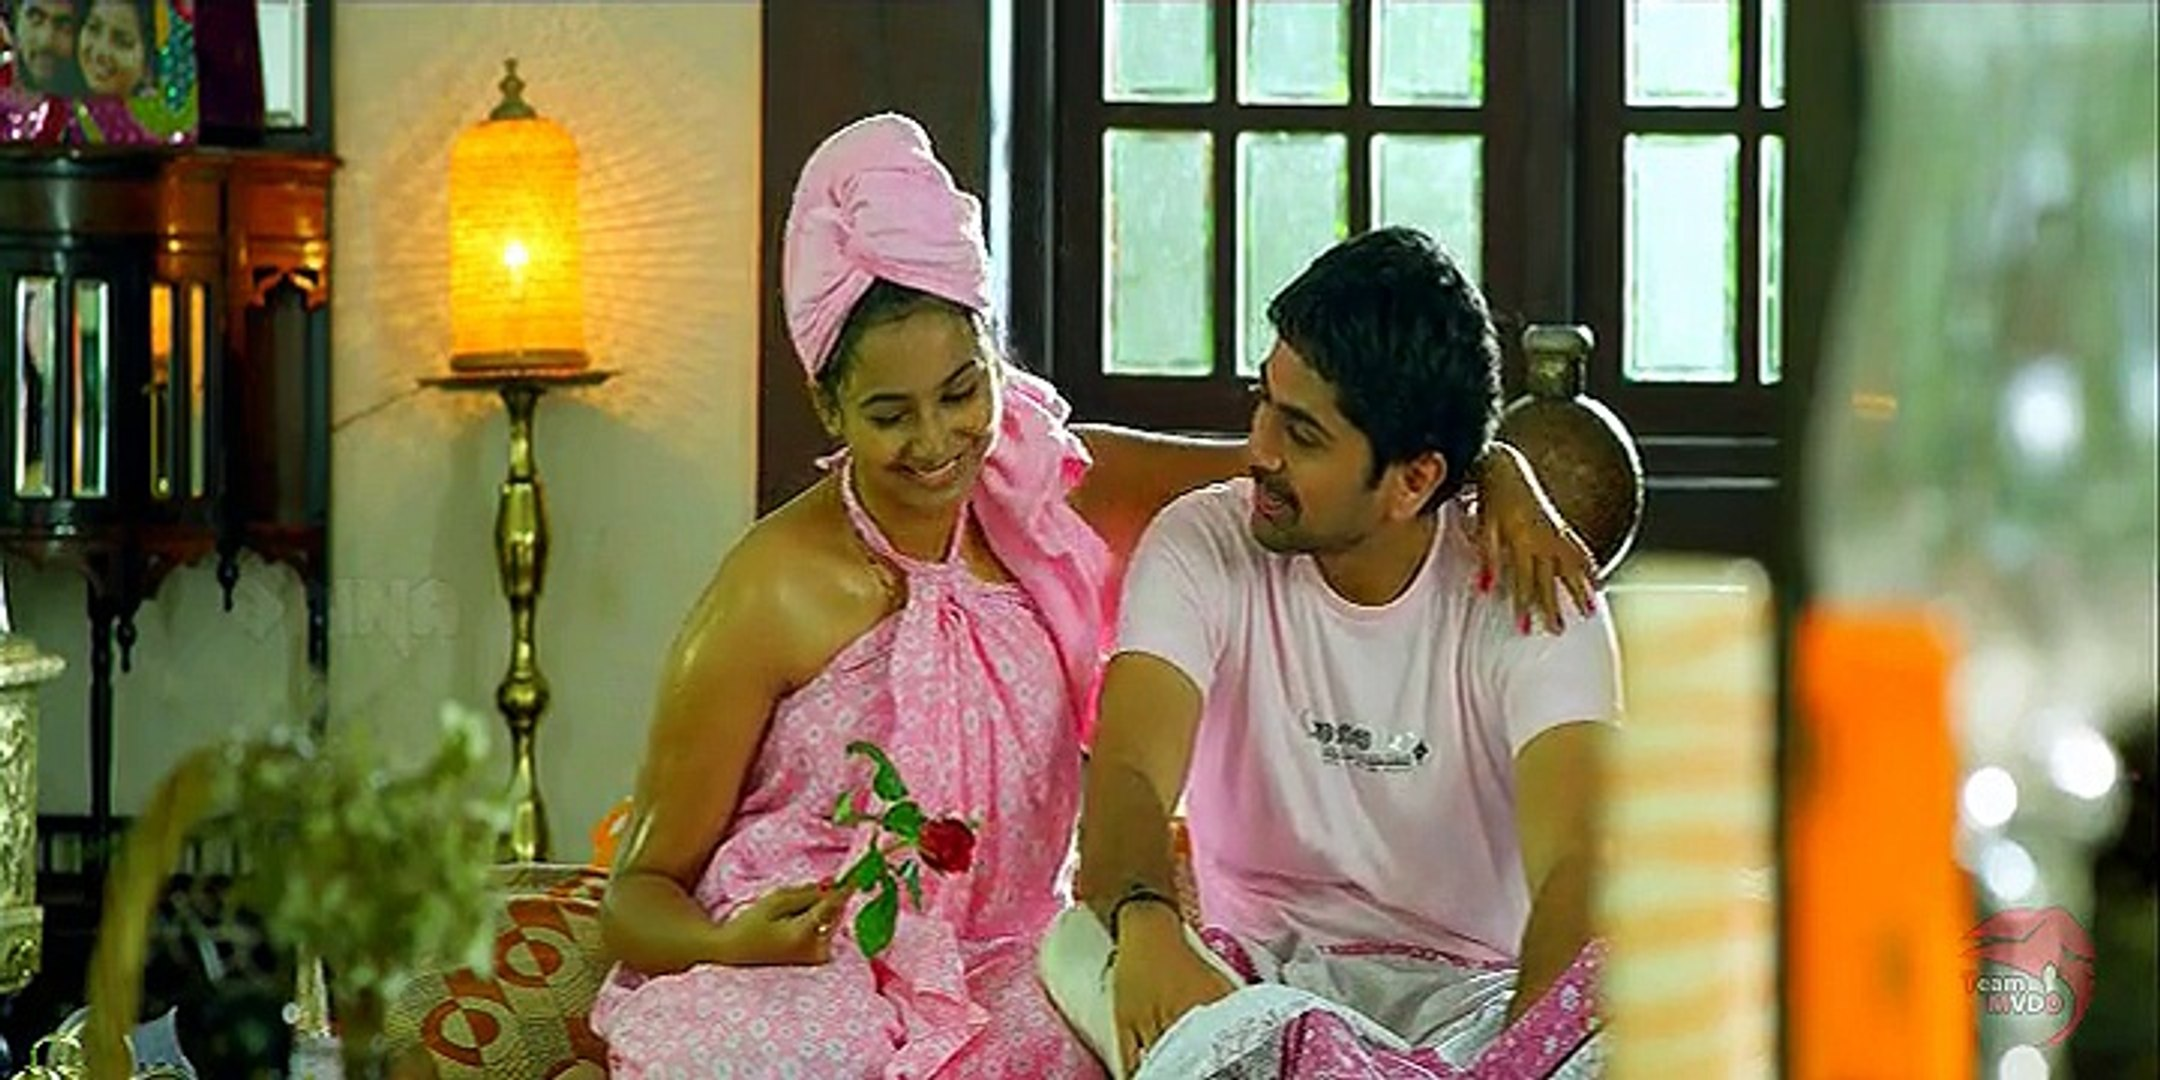 Hot Wife and Husband at Bedroom 10 30 Am Local Call Malayalam Movie